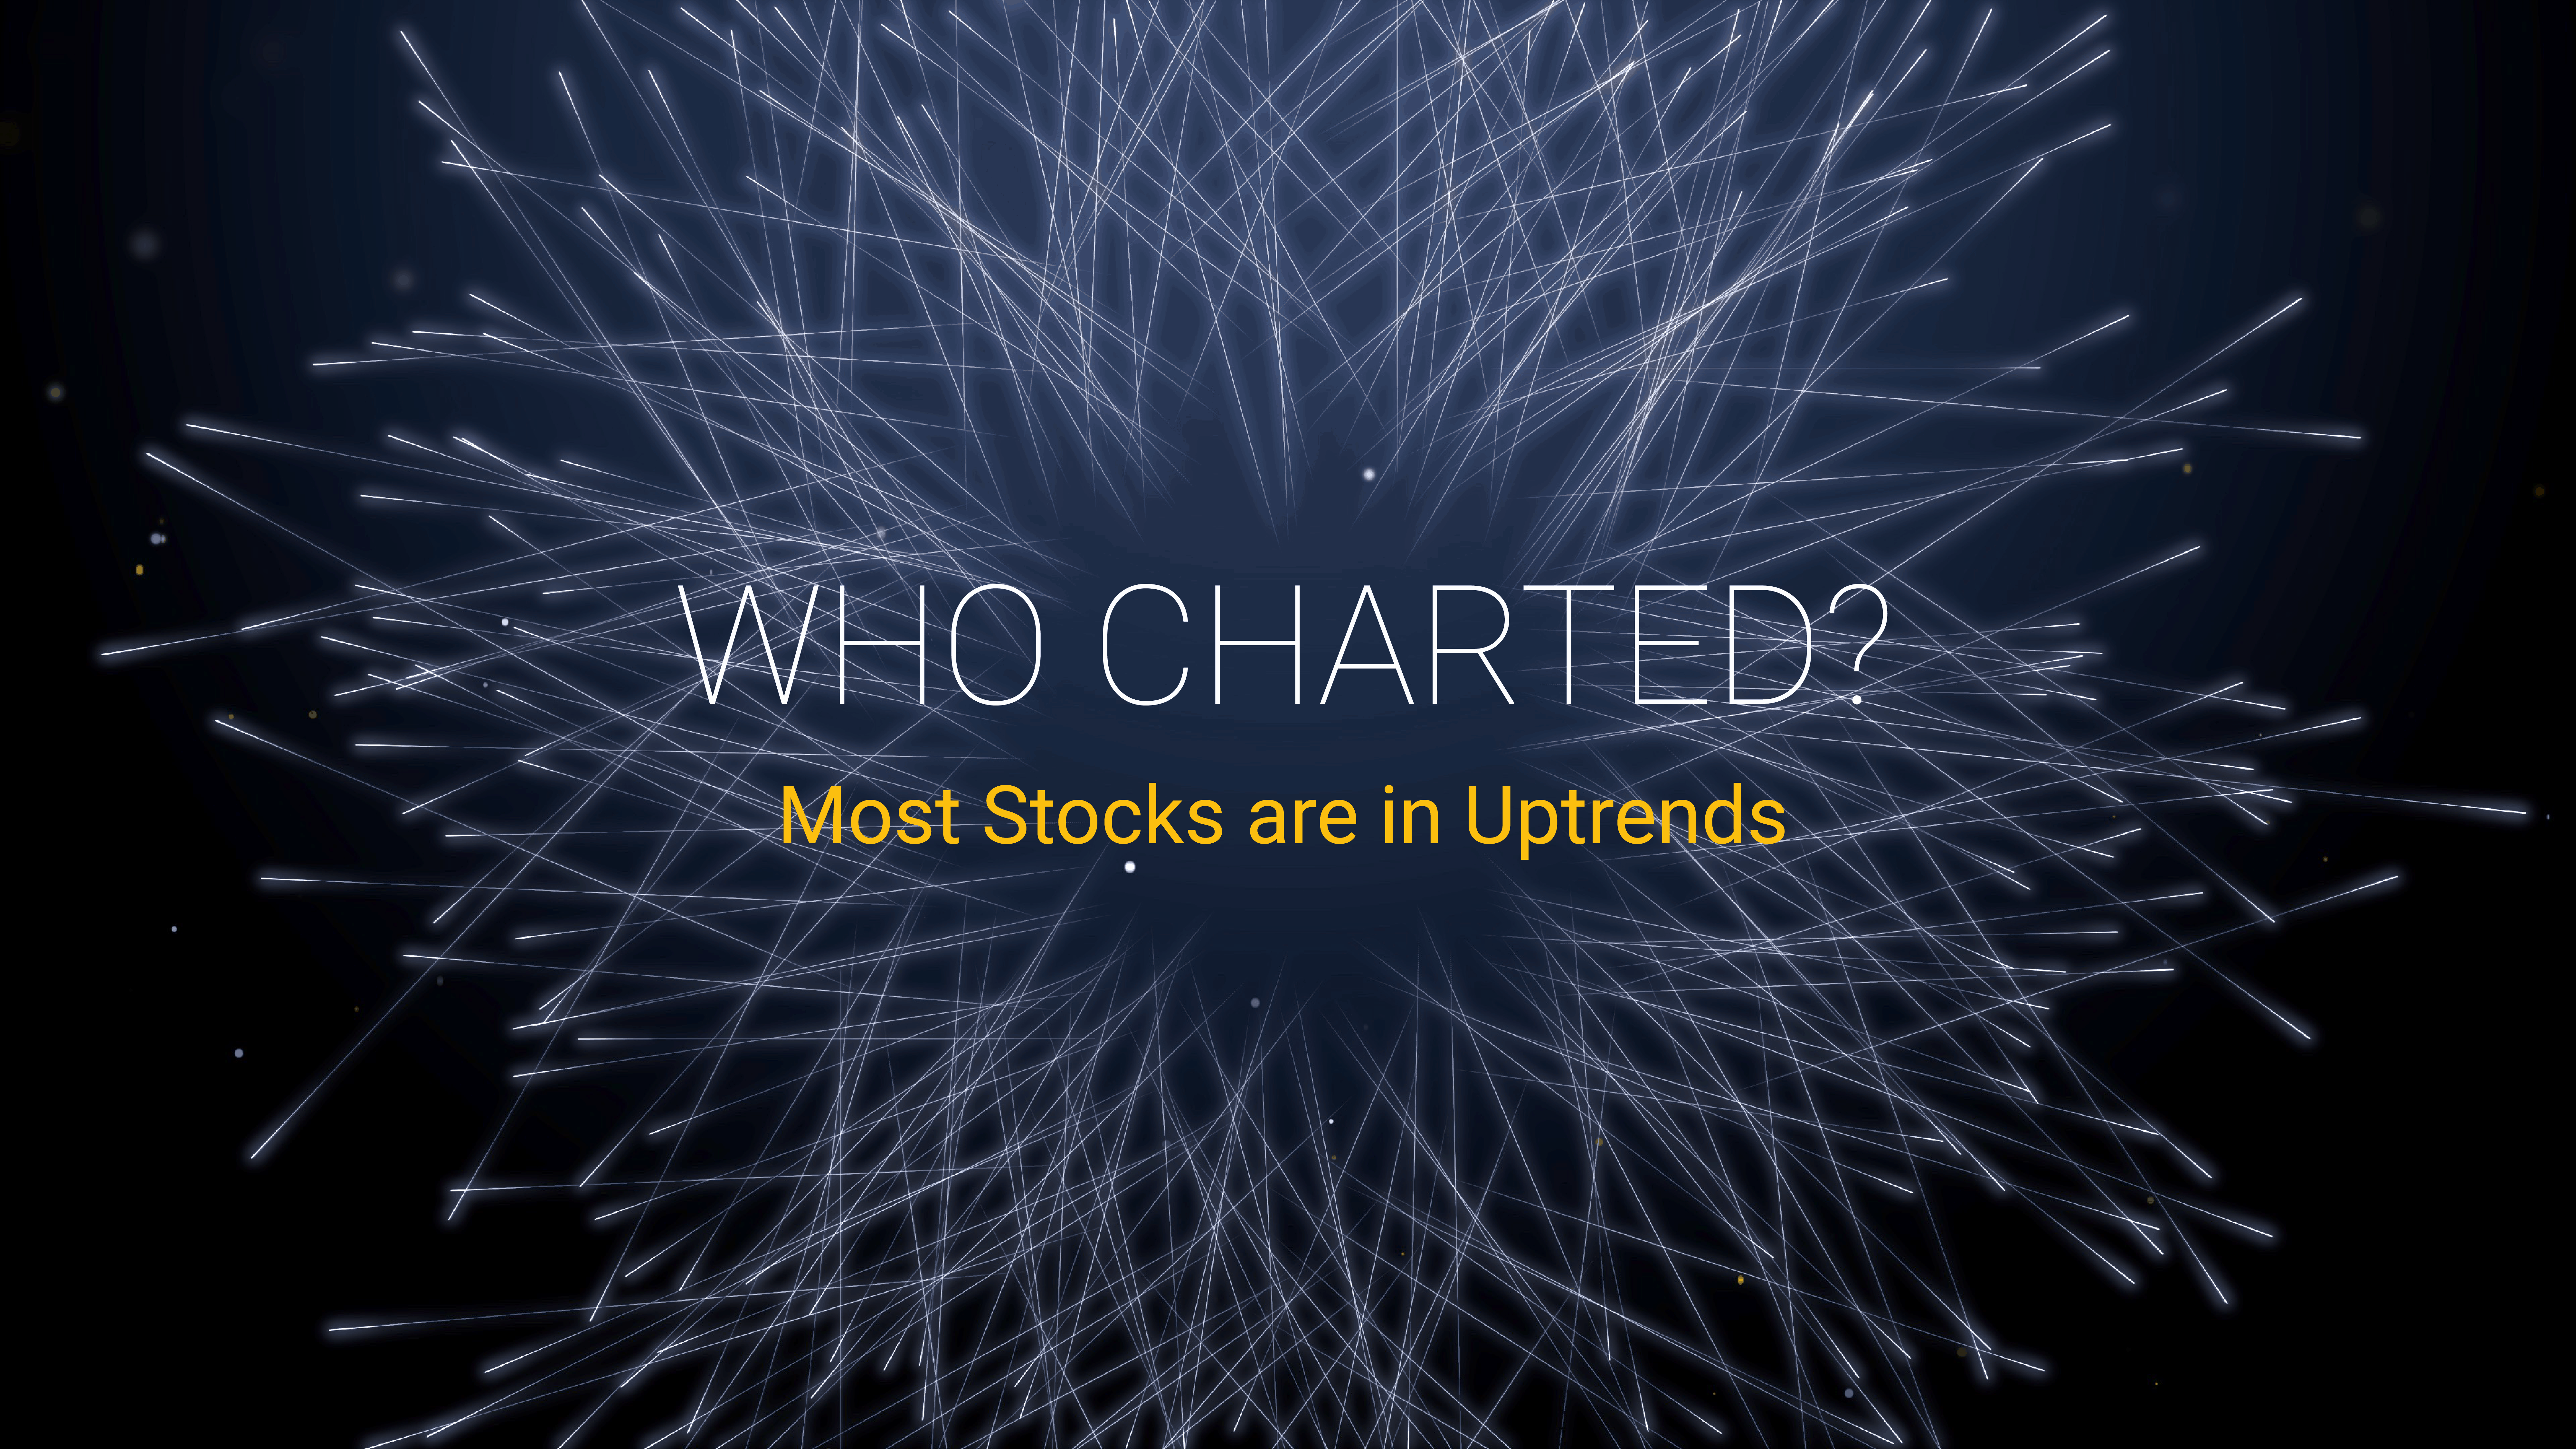 Who Charted? (E3) Most Stocks are in Uptrends